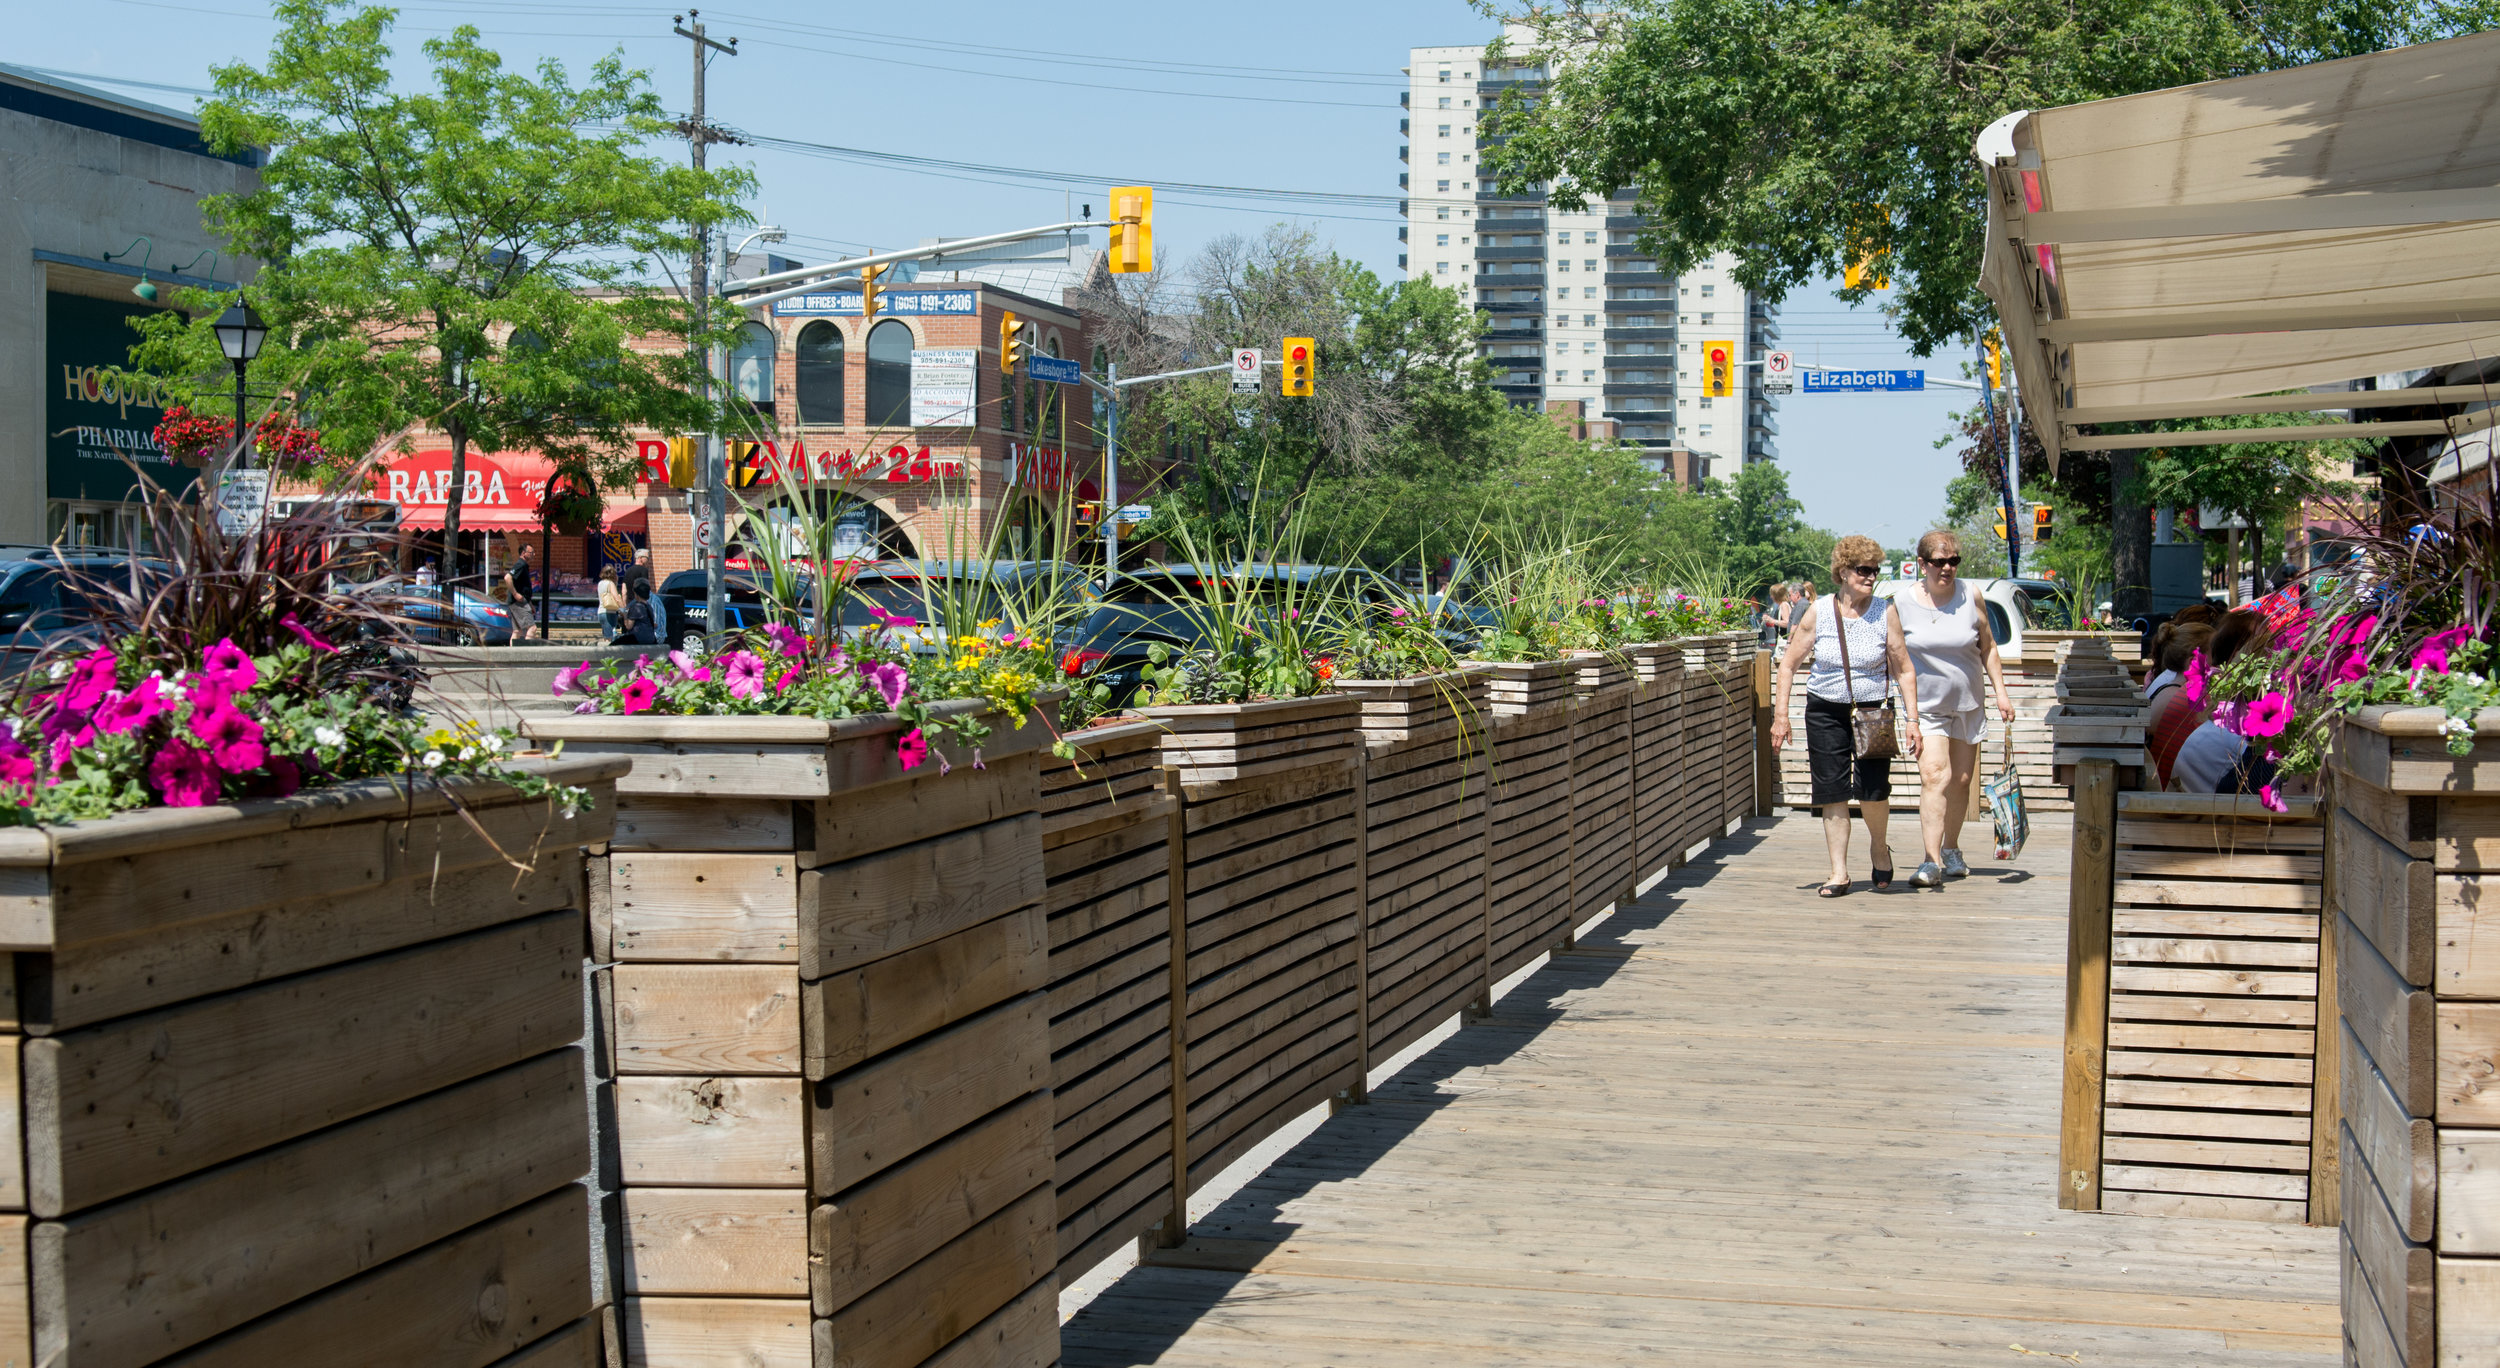 Port_Credit_community-6.jpg